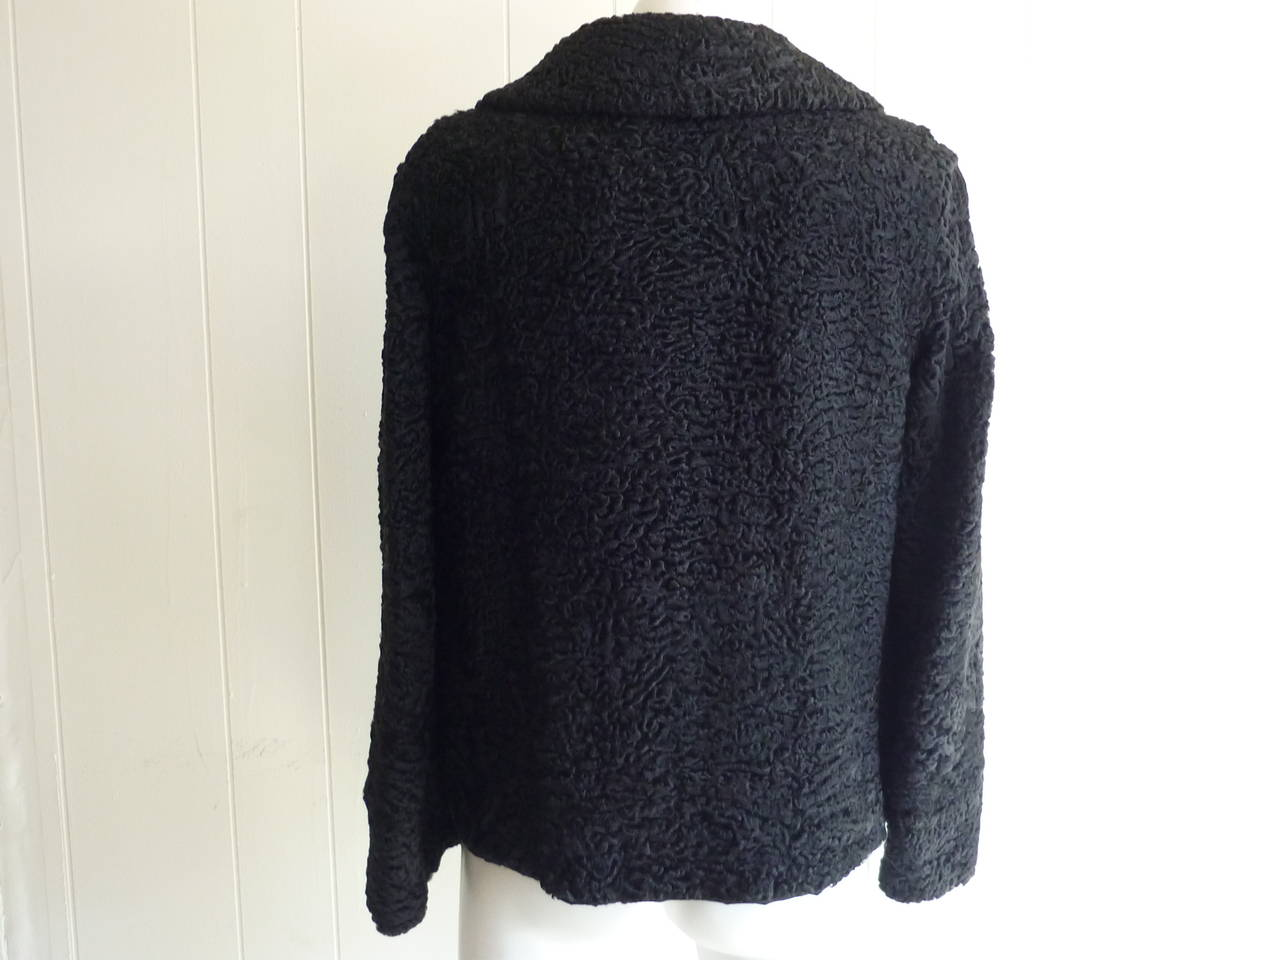 1940s - 50s Black Persian Lamb Jacket 6-8 In Excellent Condition In Port Hope, ON